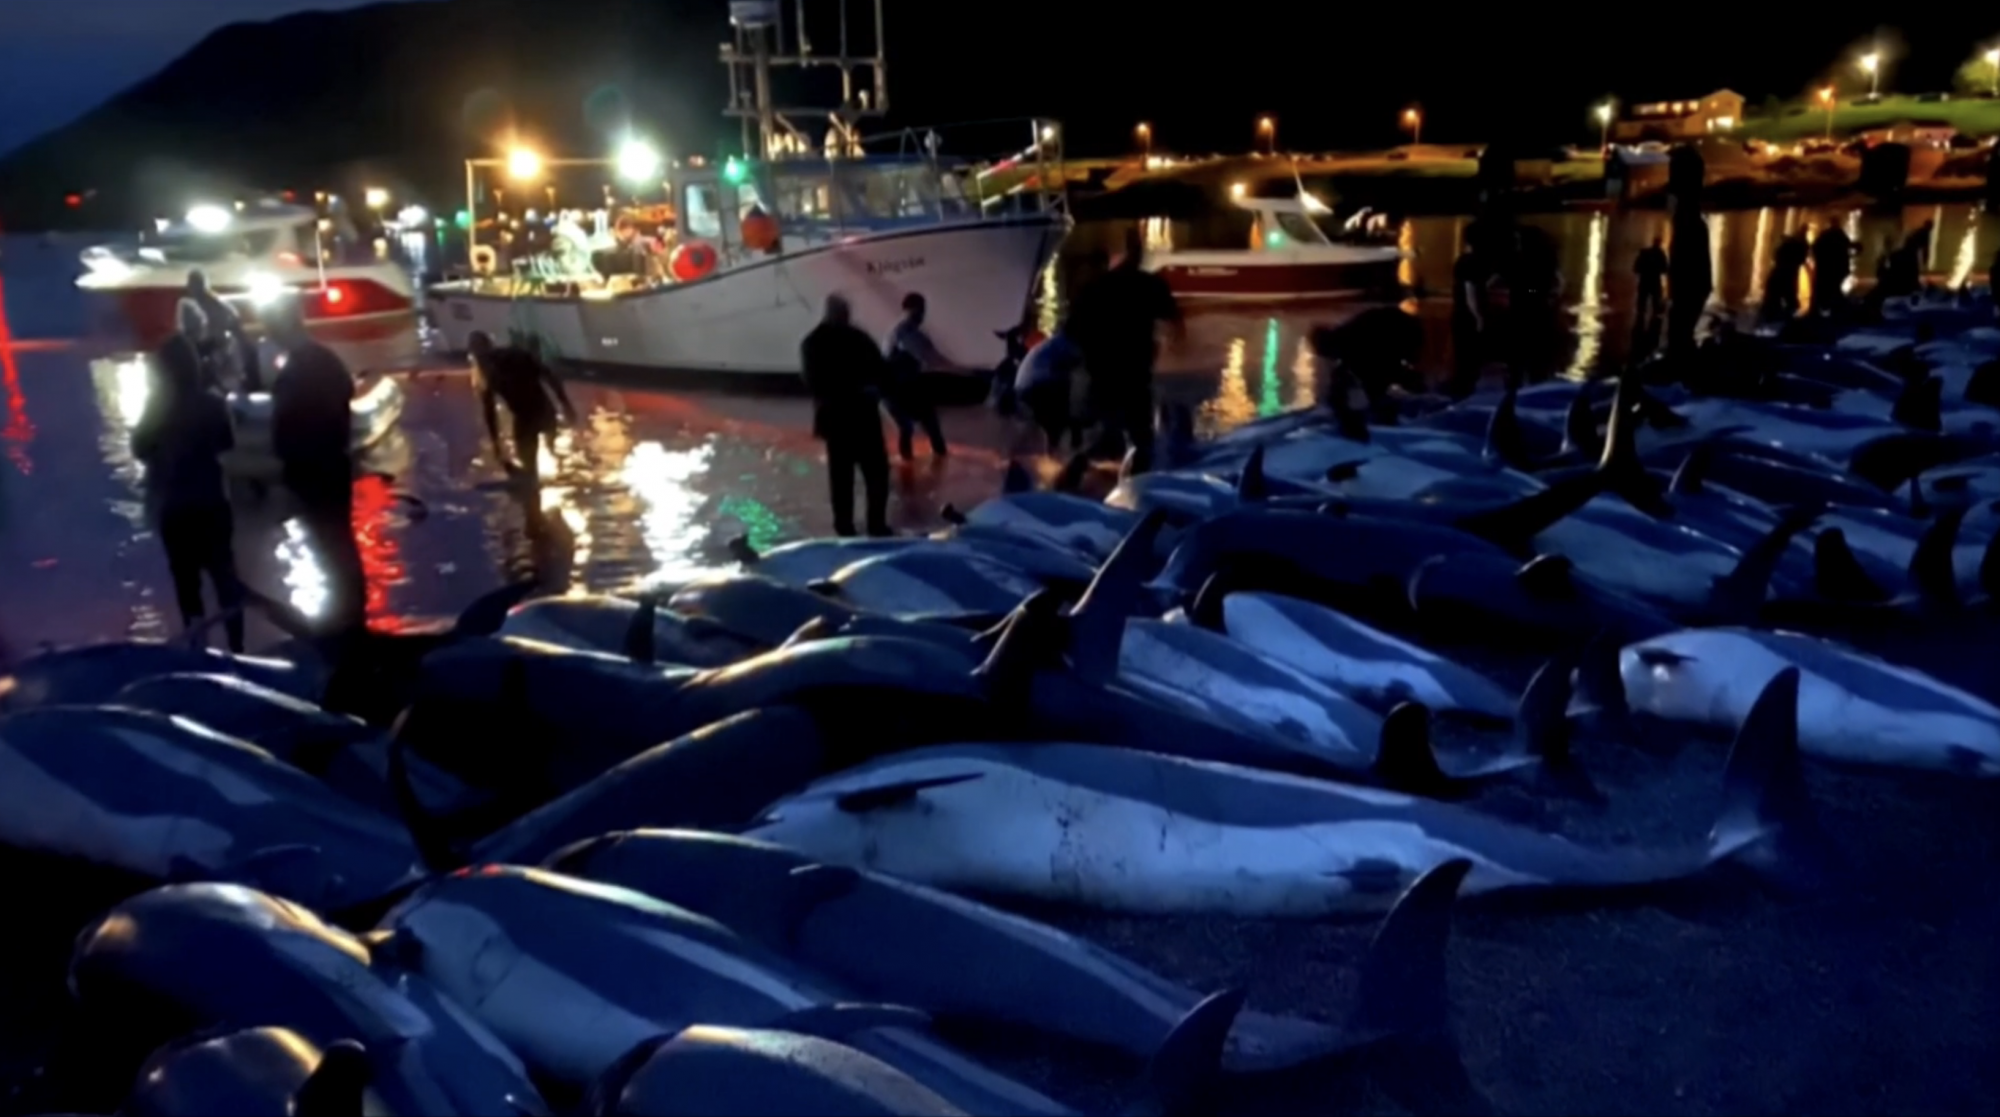 Hunters kill nearly 1,500 dolphins in Faroe Islands sparking outcry